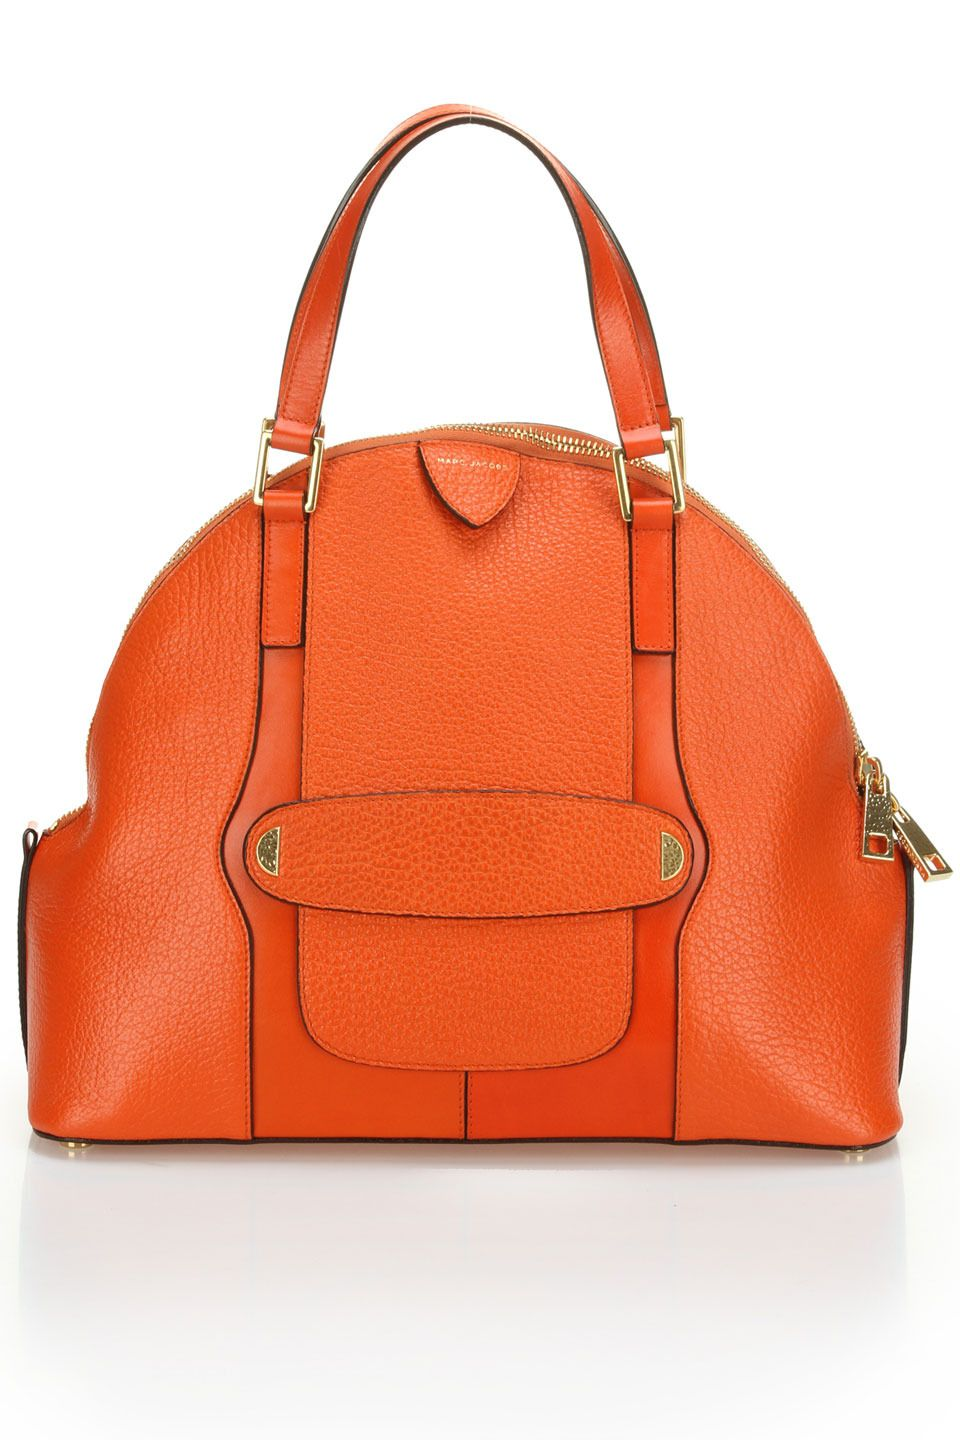 771ec4133 Marc Jacobs Crosby Satchel- Love a tangerine orange purse! Bolsos  Juveniles, Naranja,